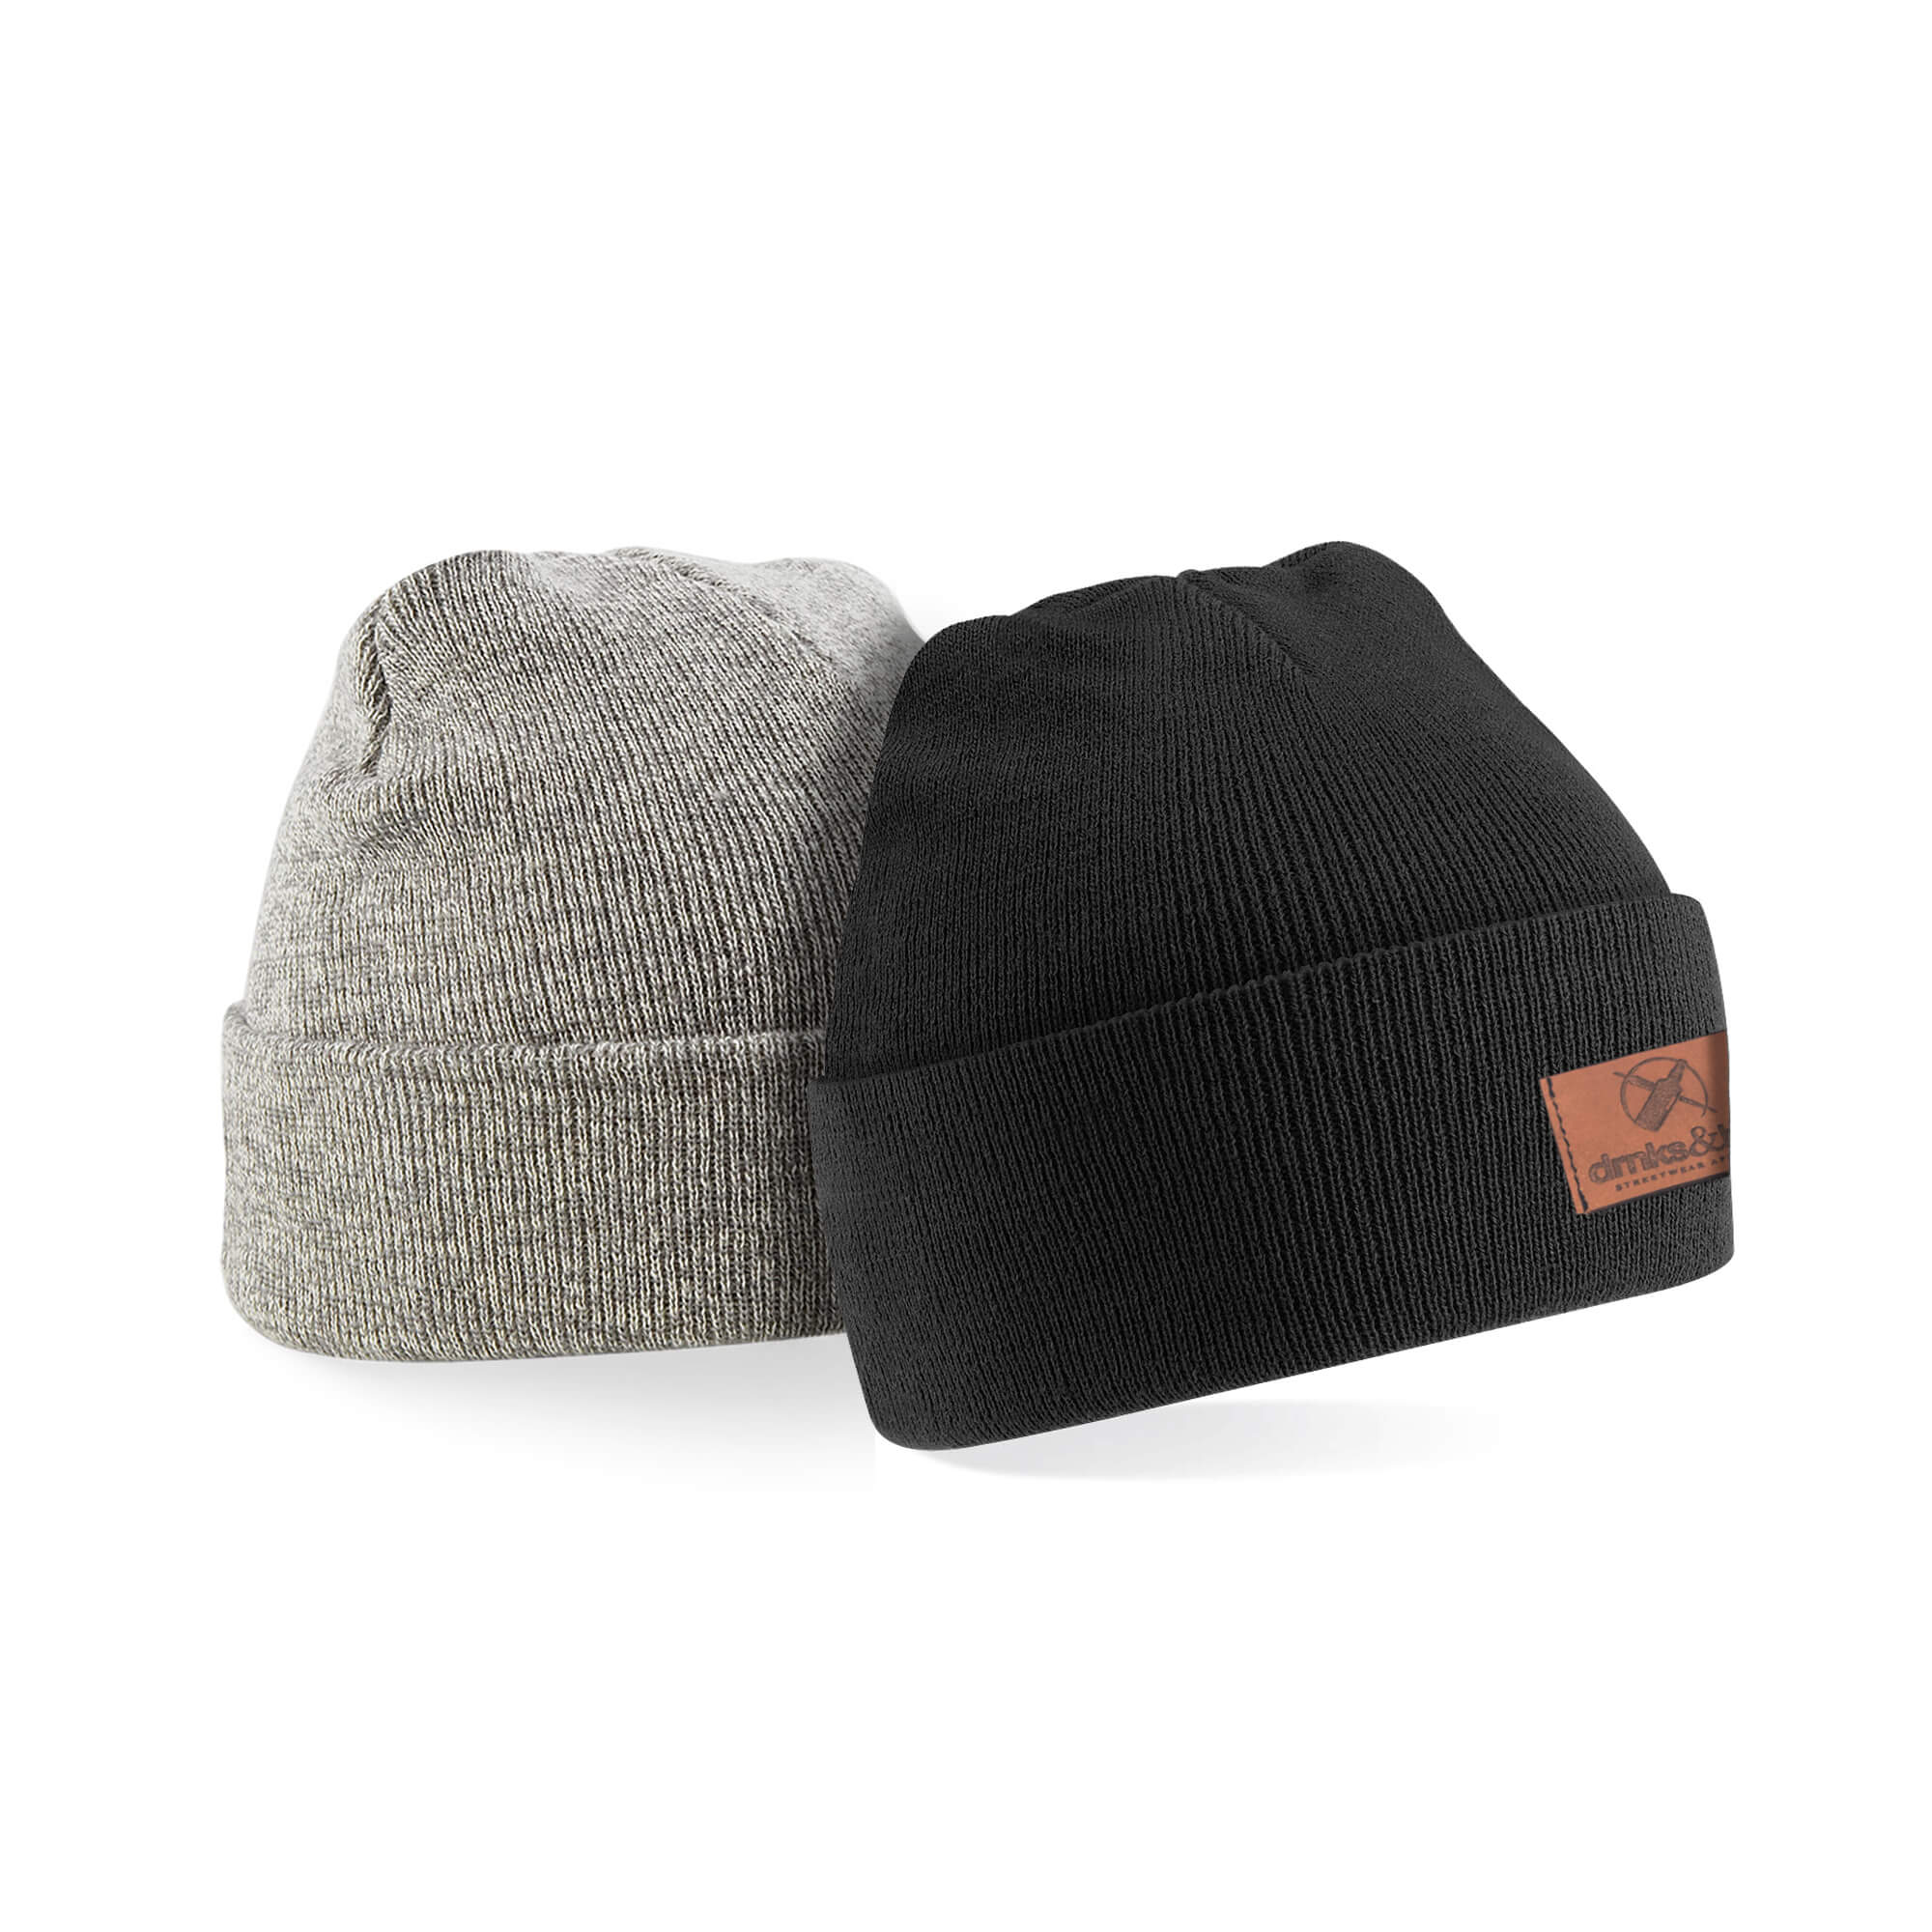 Cuffed Winter Beenie